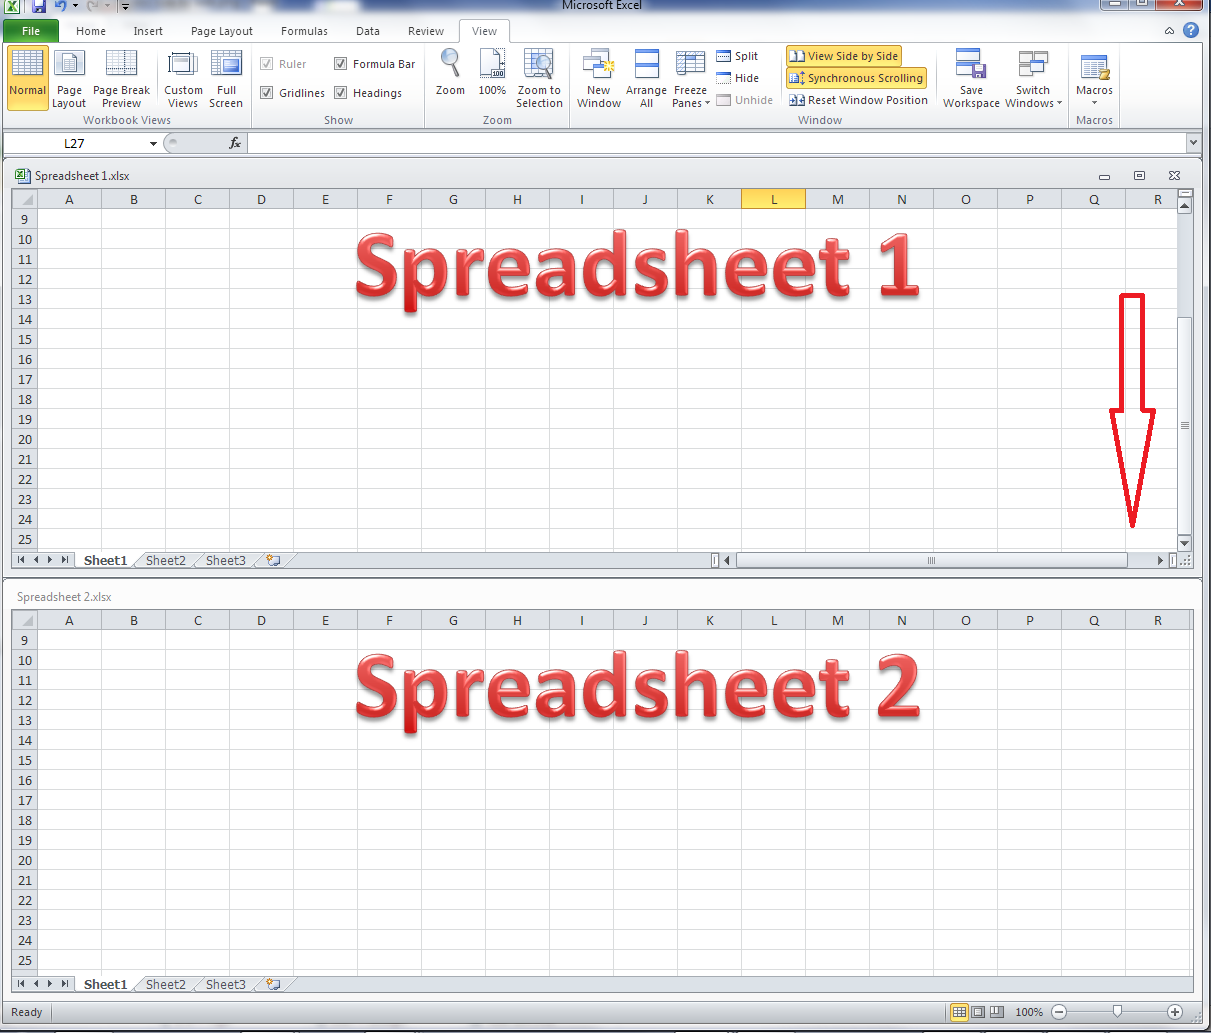 worksheet Excel Worksheet View how do i view two excel spreadsheets at a time libroediting side by synchronous scrolling